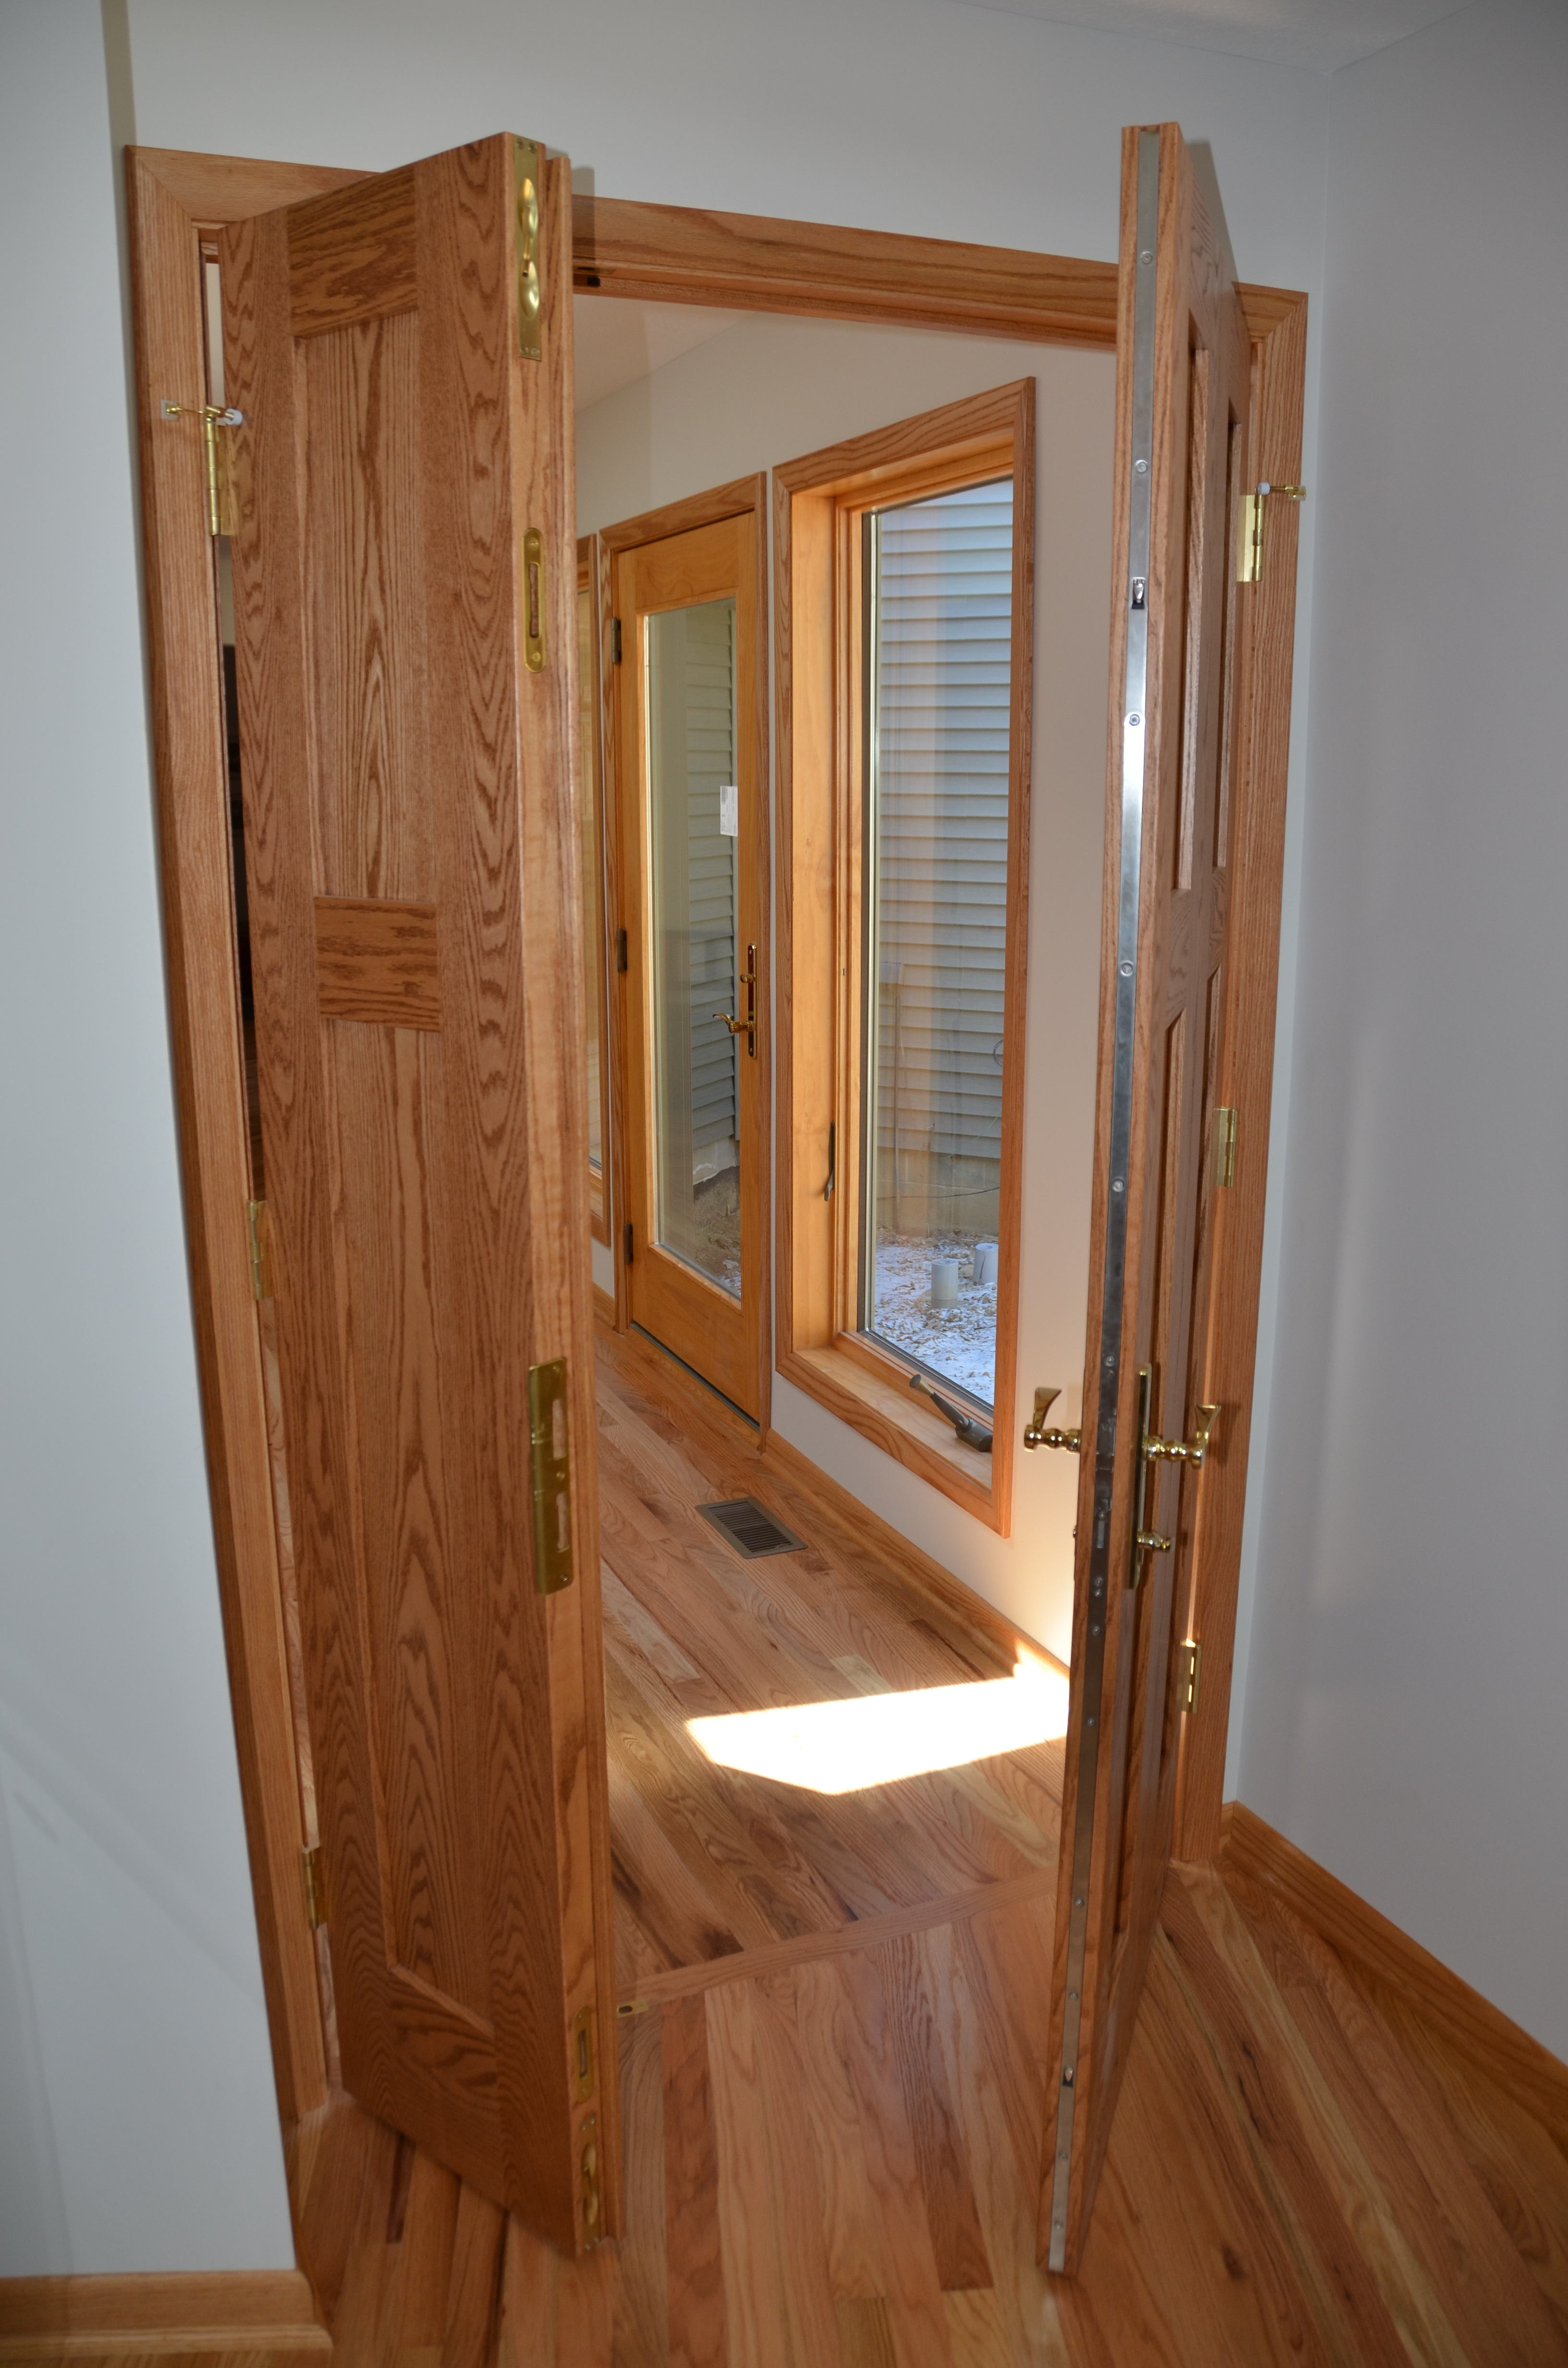 Double entry door with multi-point locks